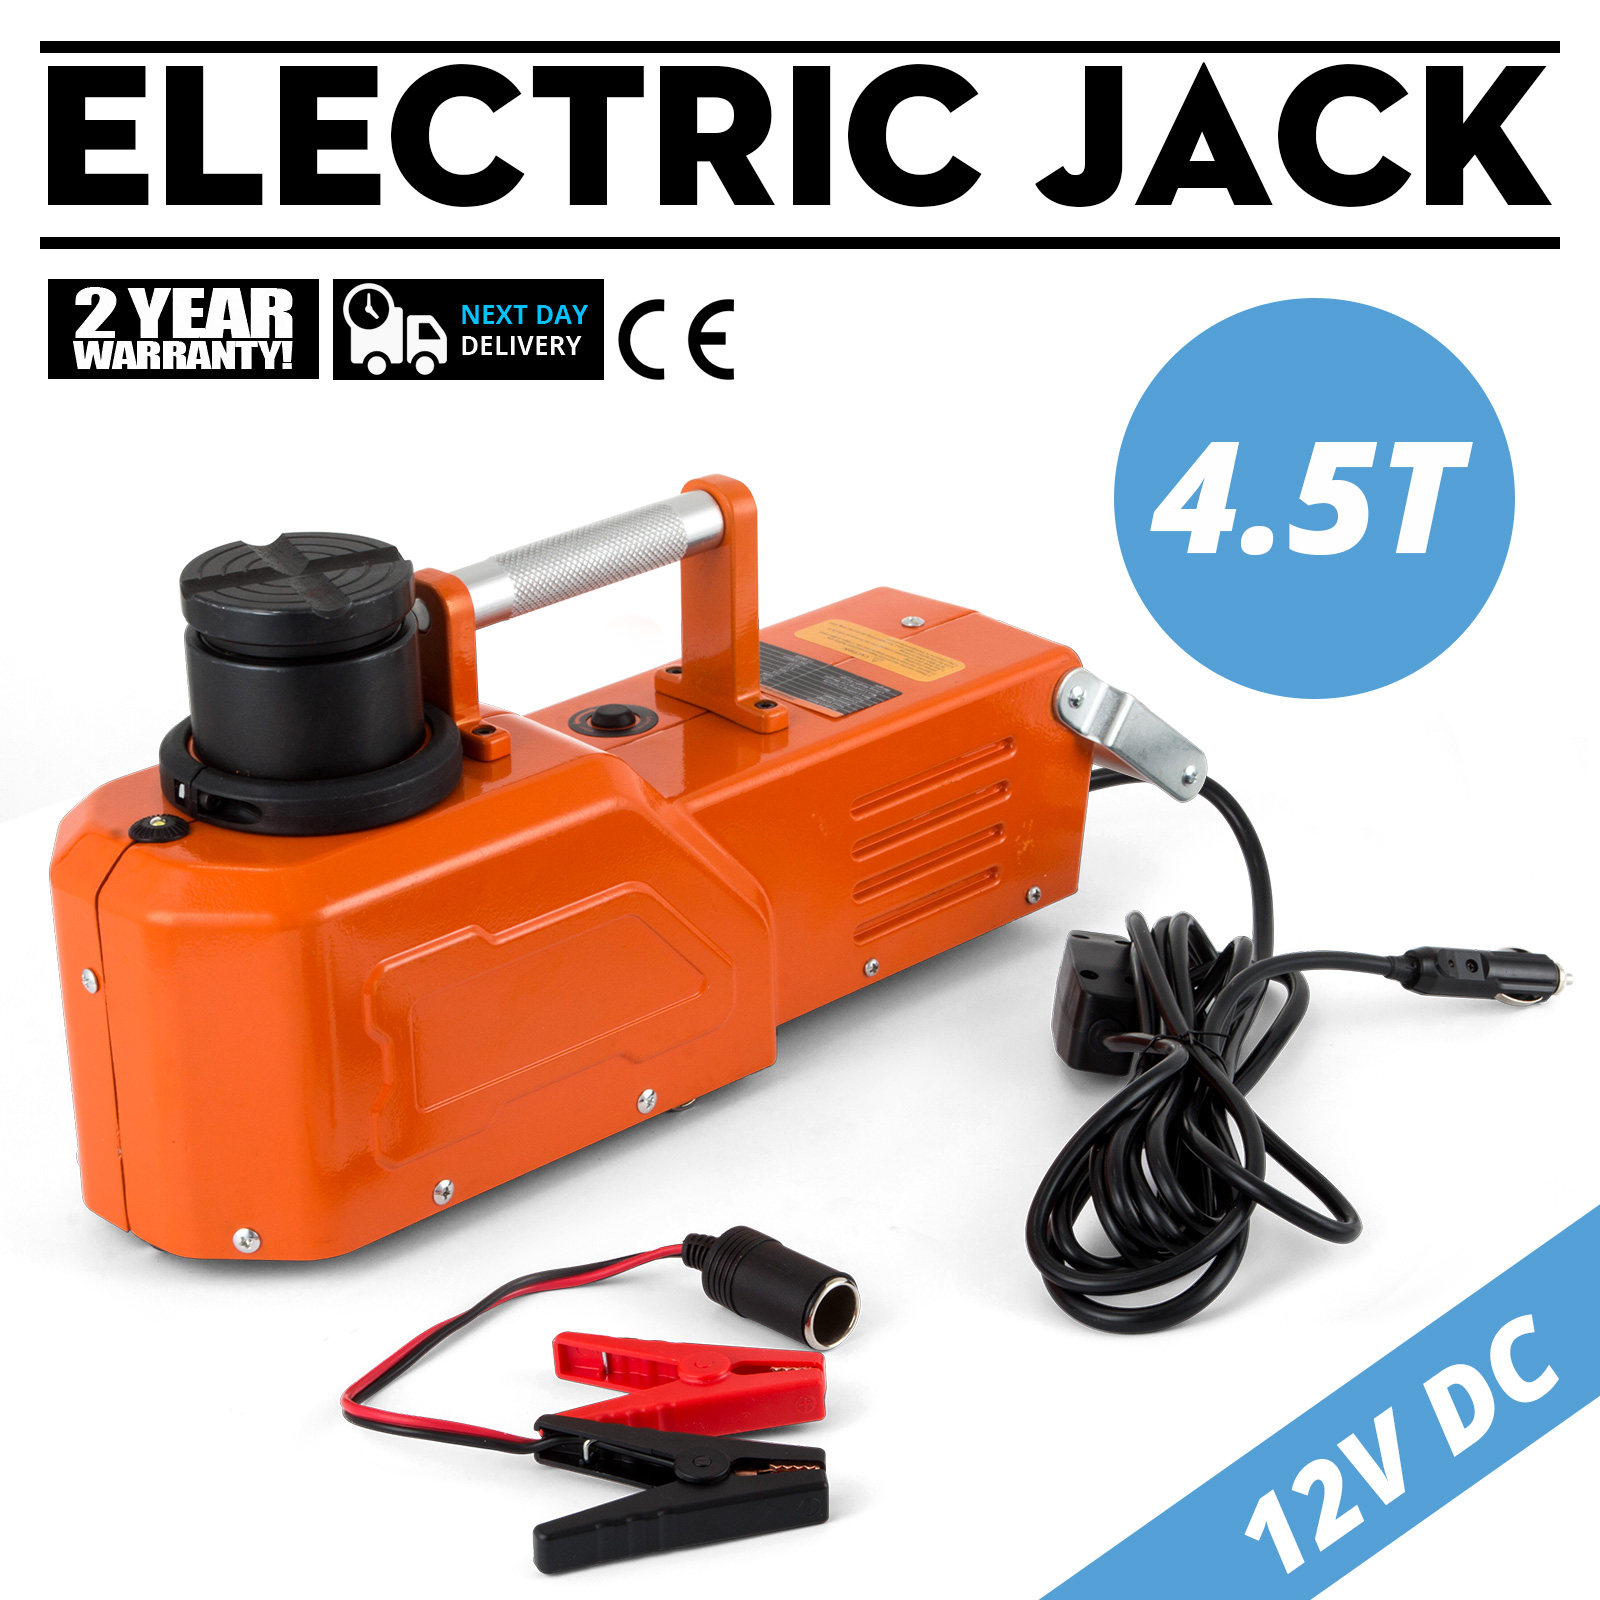 12V Hydraulic Floor Jack Electric Car Lift 9900lbs